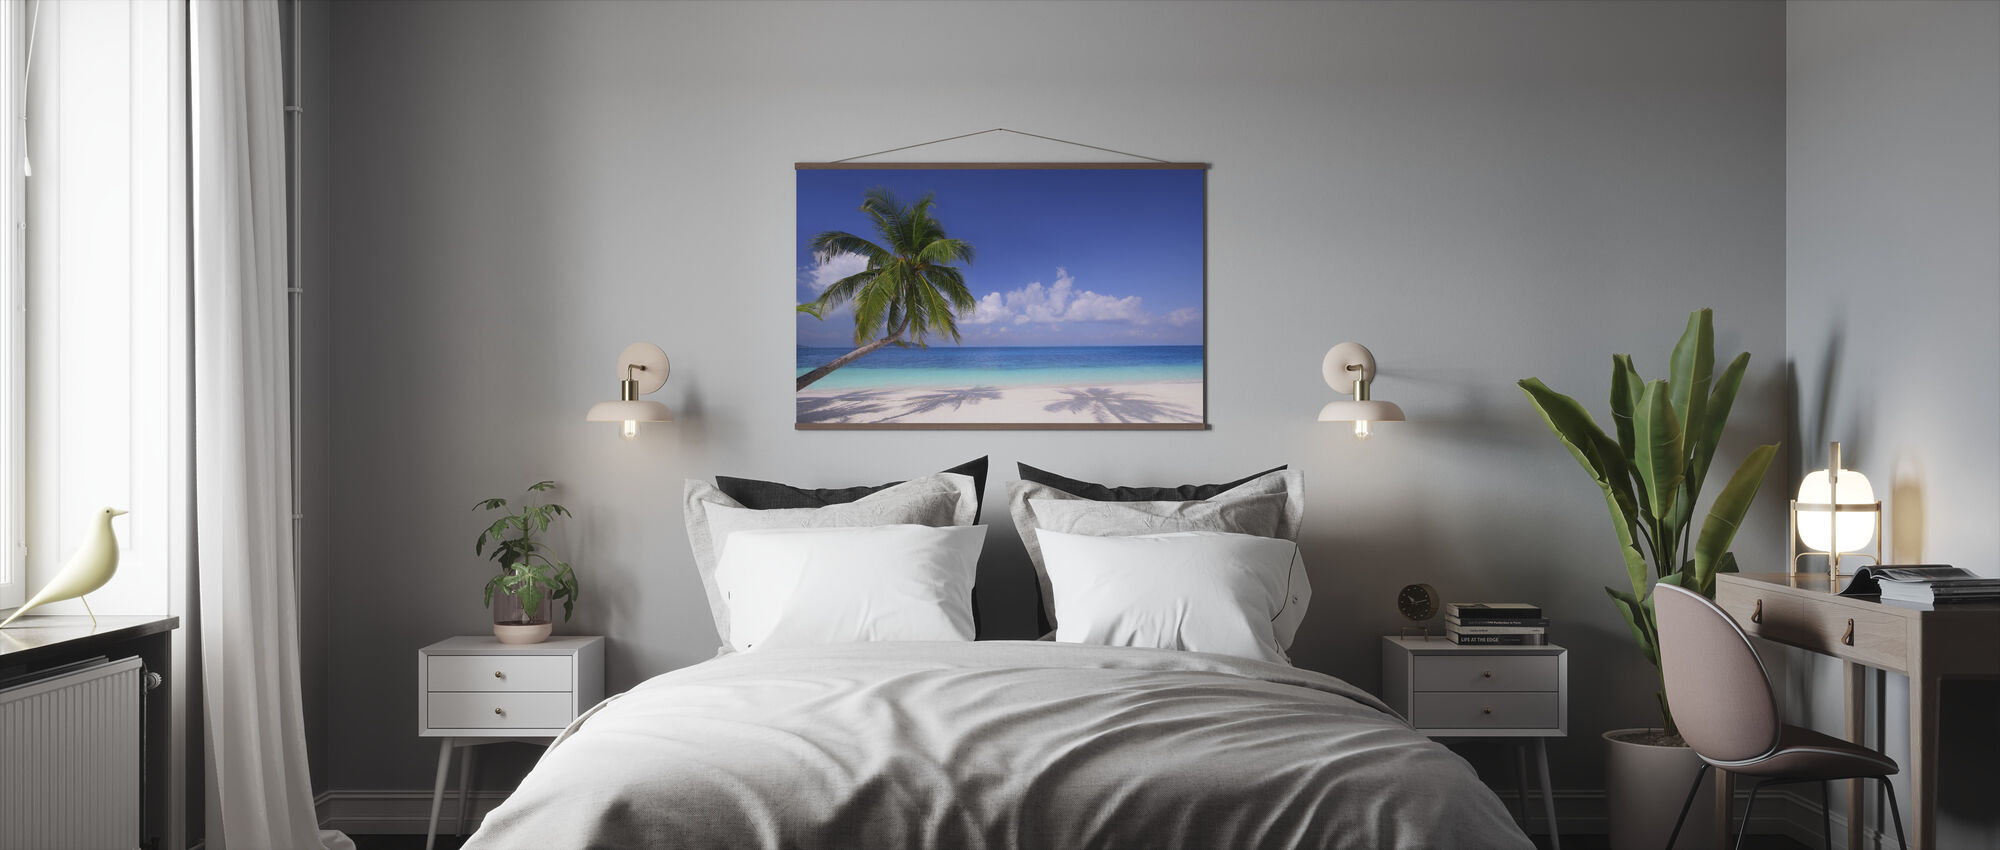 Inselparadies - Poster - Schlafzimmer